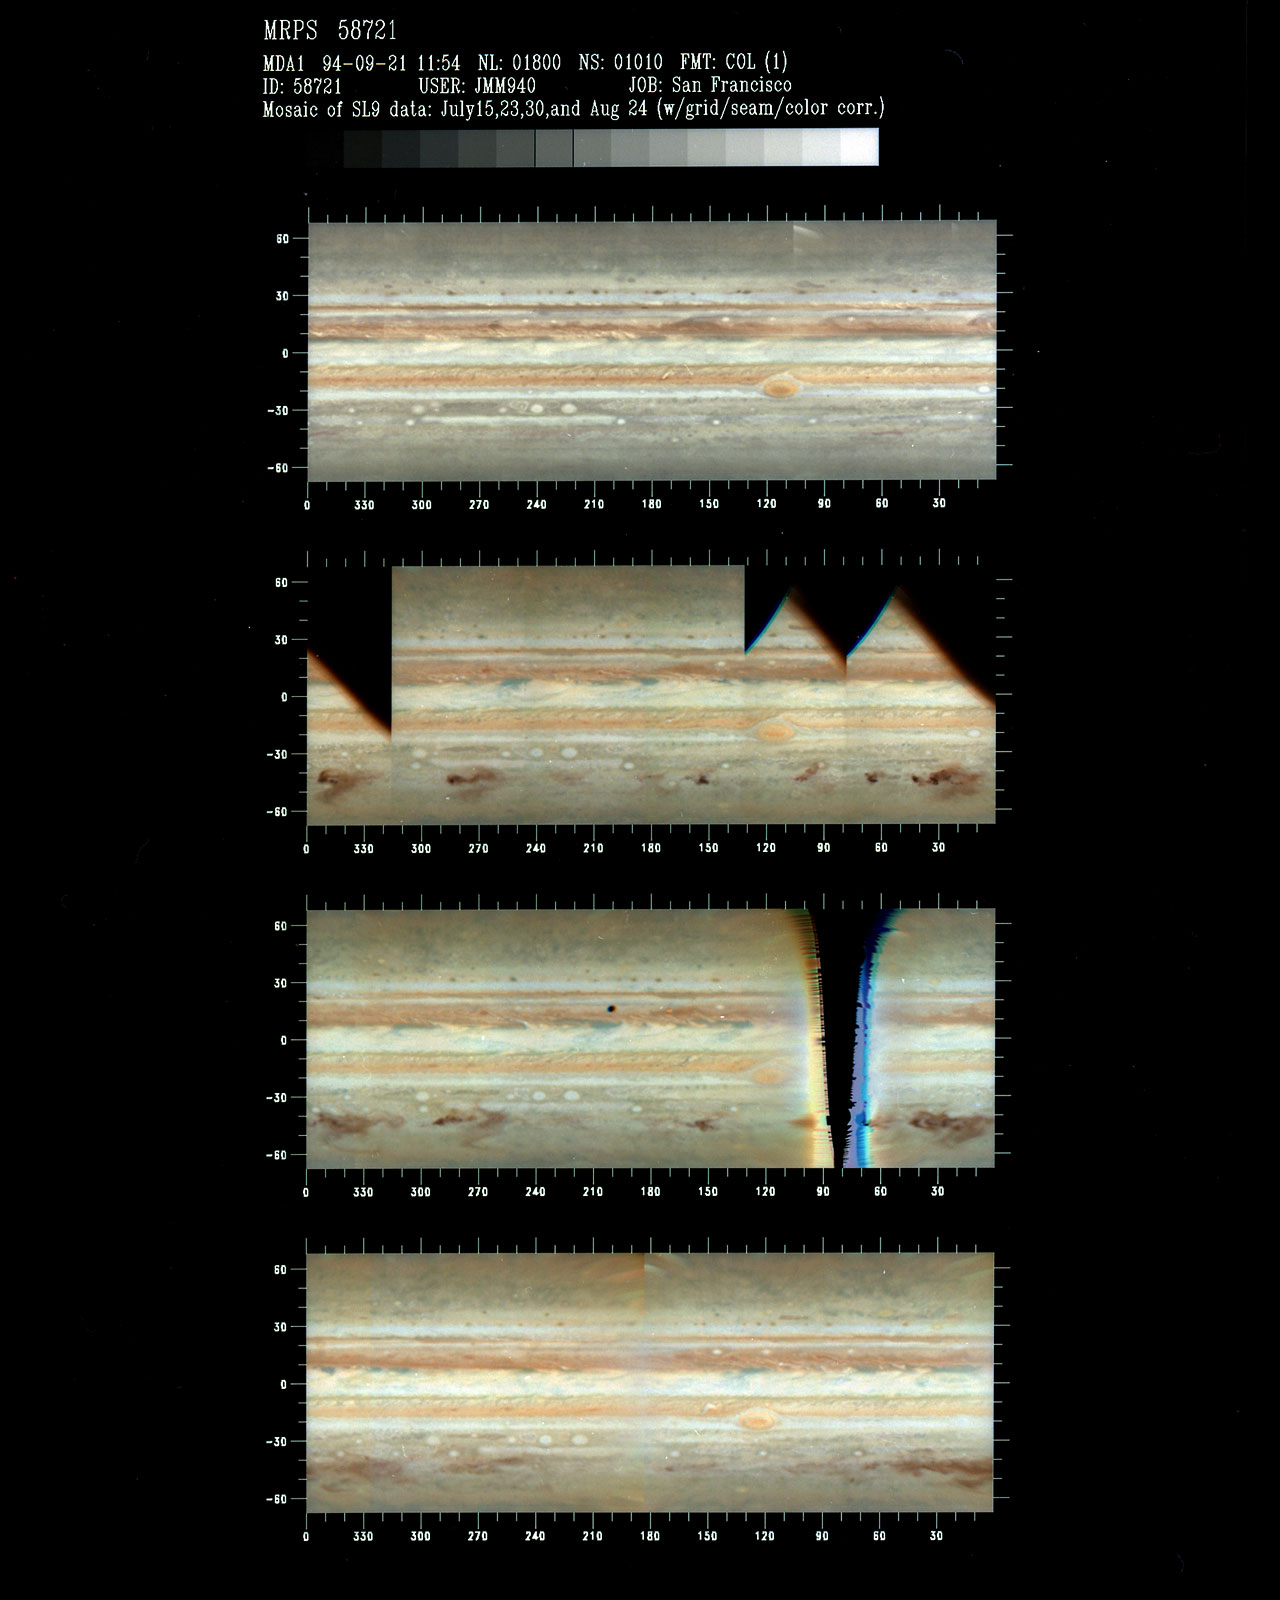 Jupiter Mapping Traces Changes in Comet P/Shoemaker-Levy 9 Impact Sites